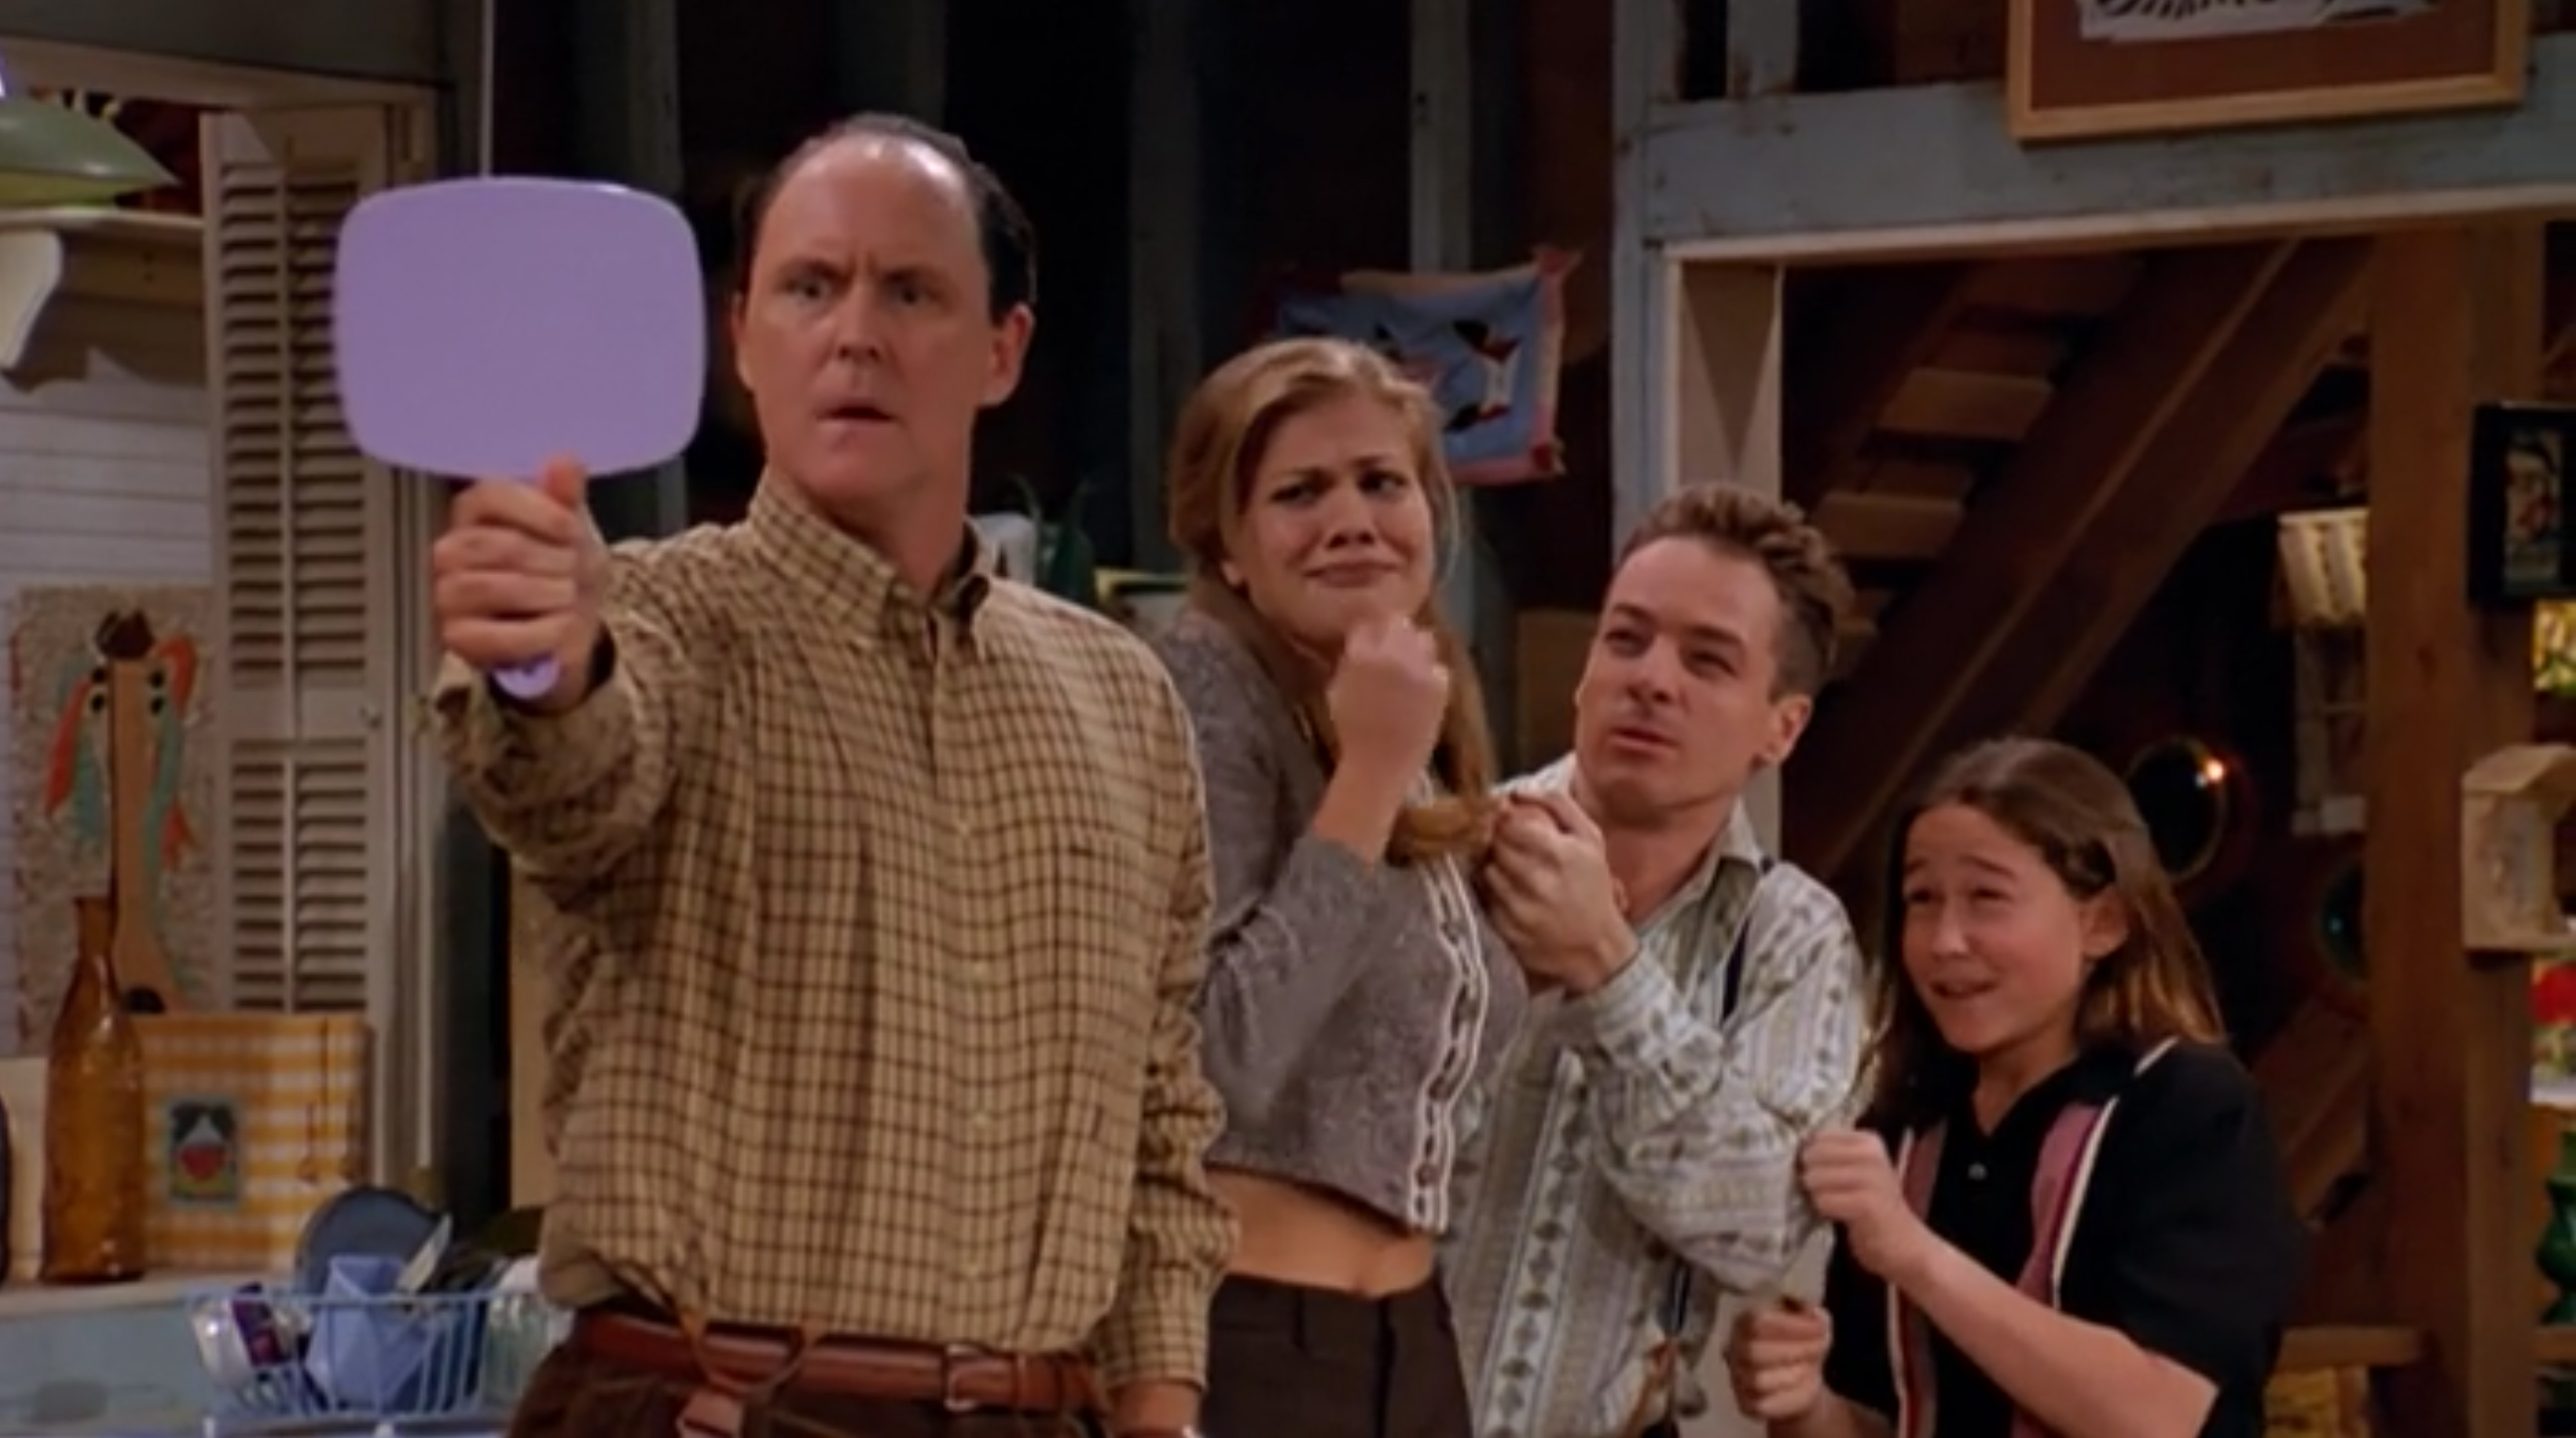 John Lithgow as Dick, surrounded by his alien